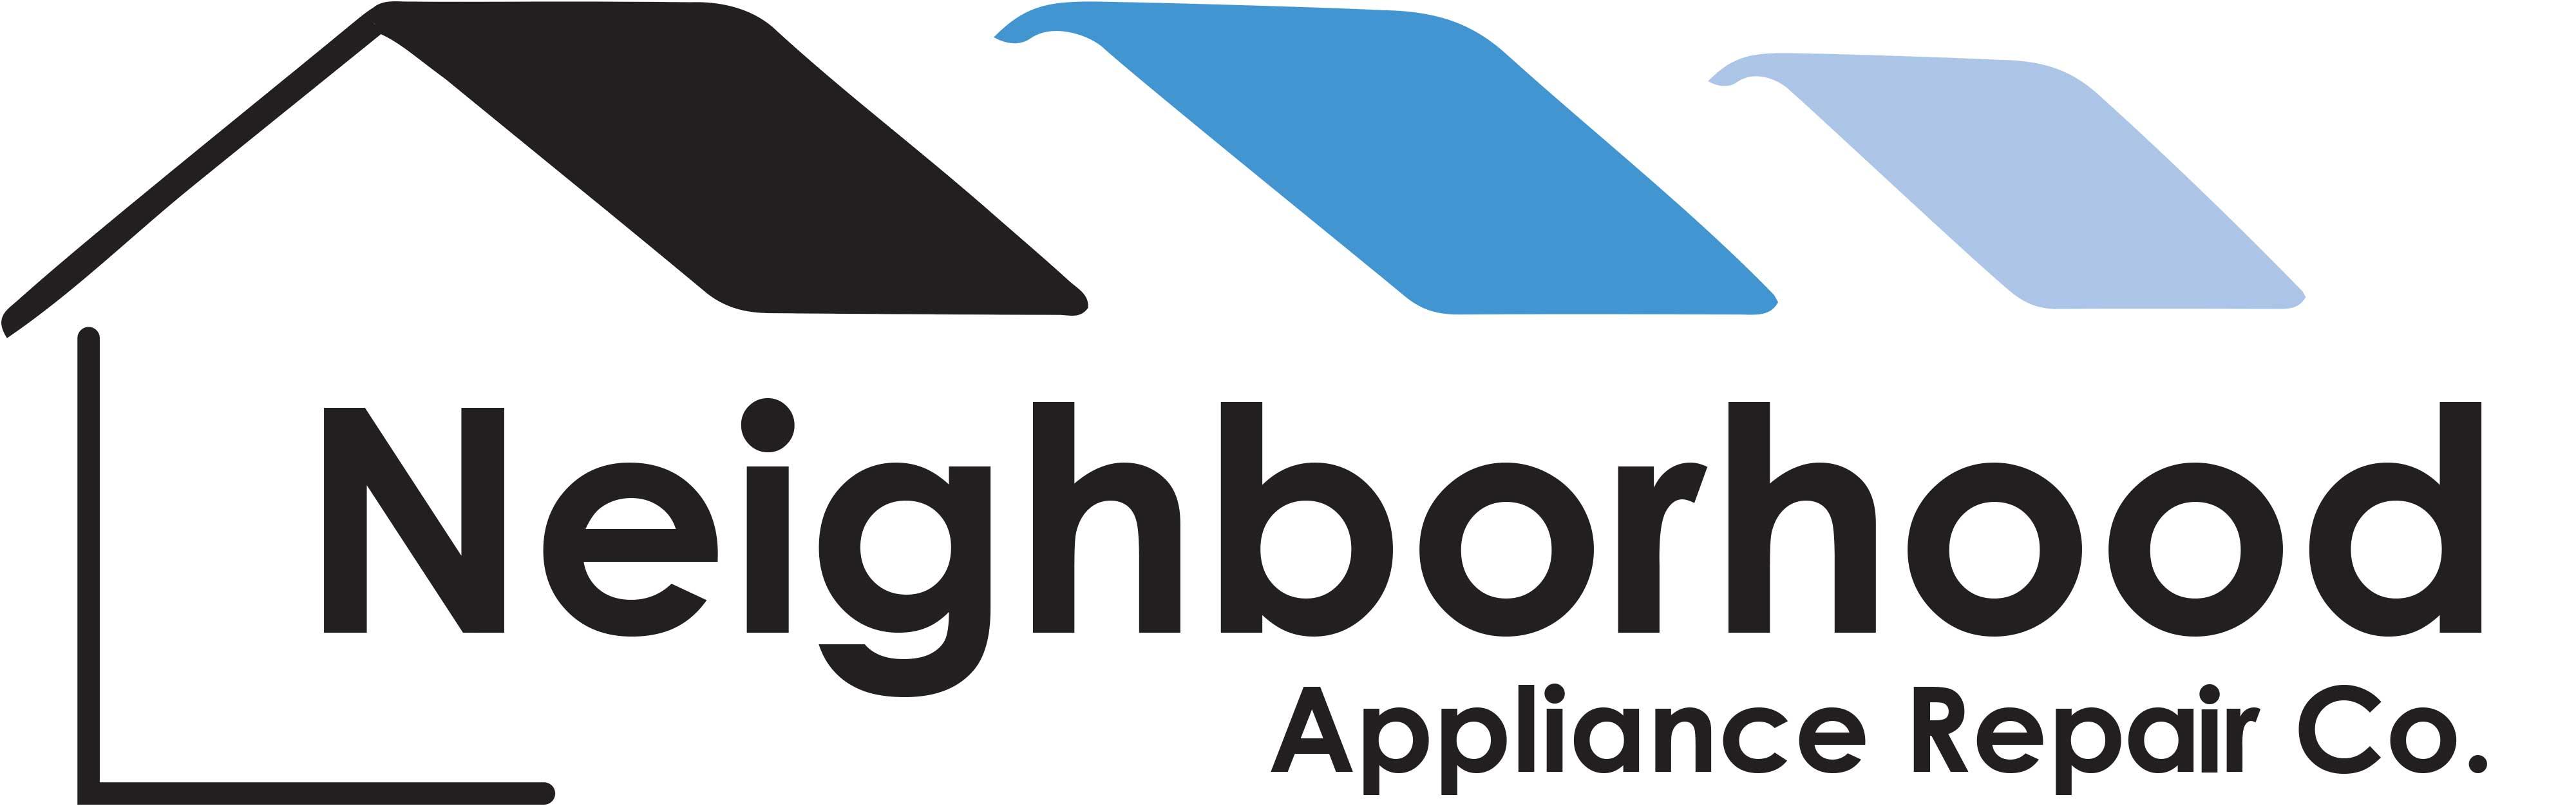 Neighborhood Appliance Repair, Logo